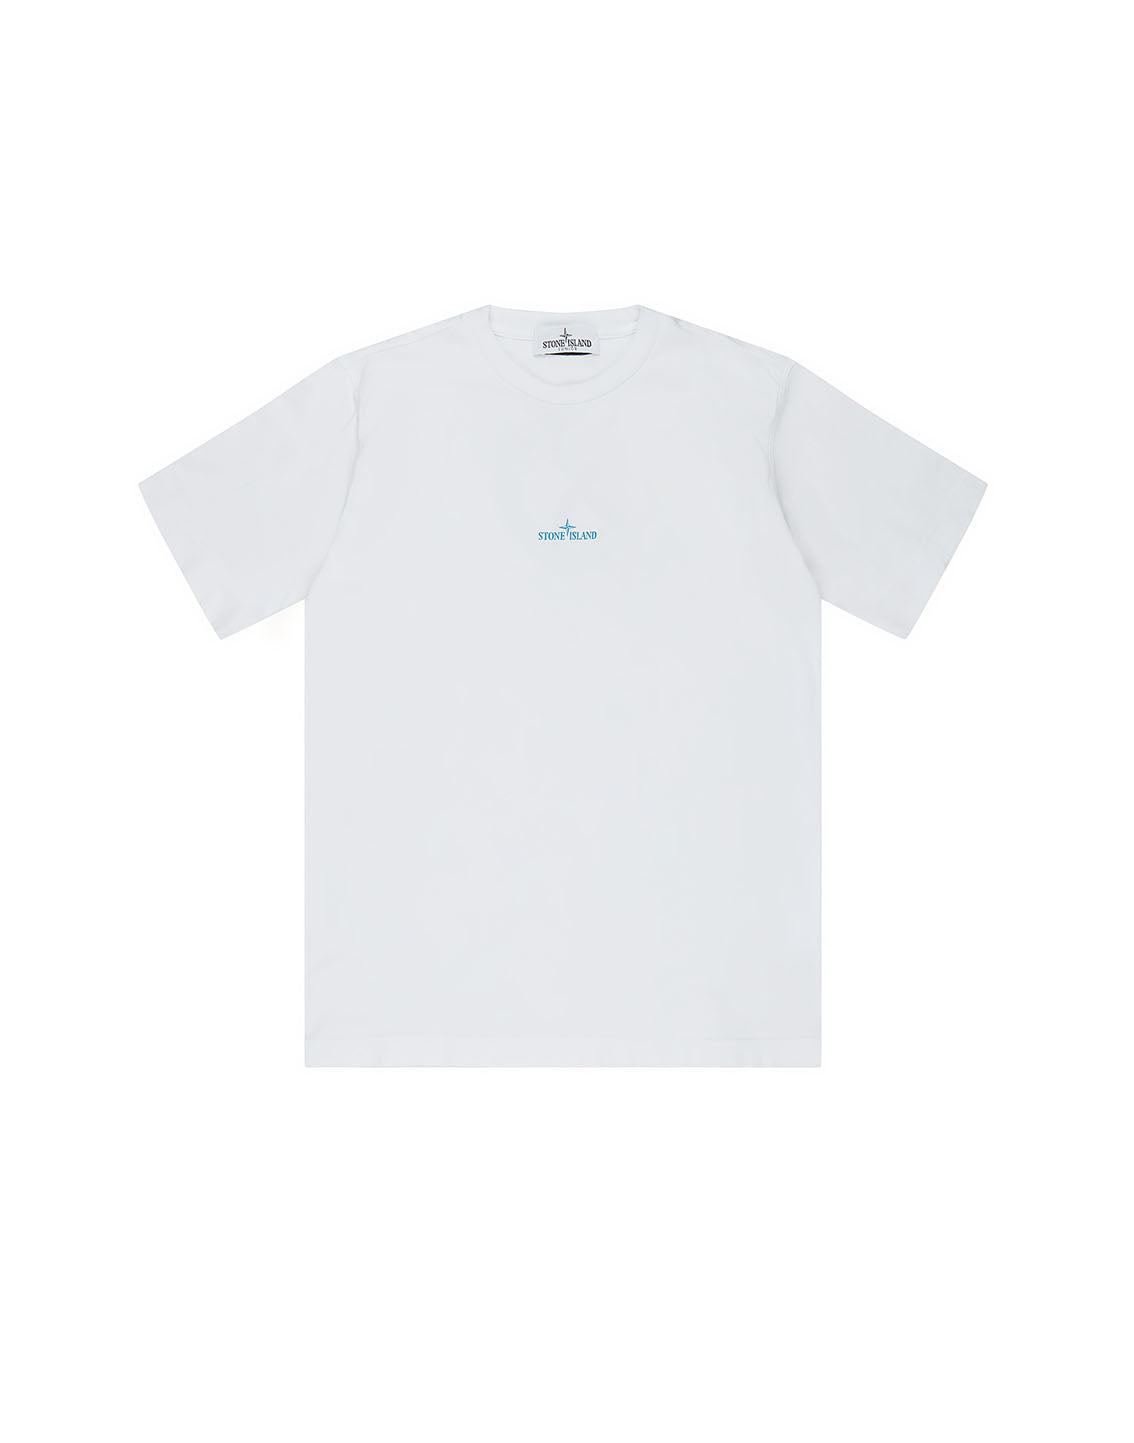 21452 Logo T-Shirt in White